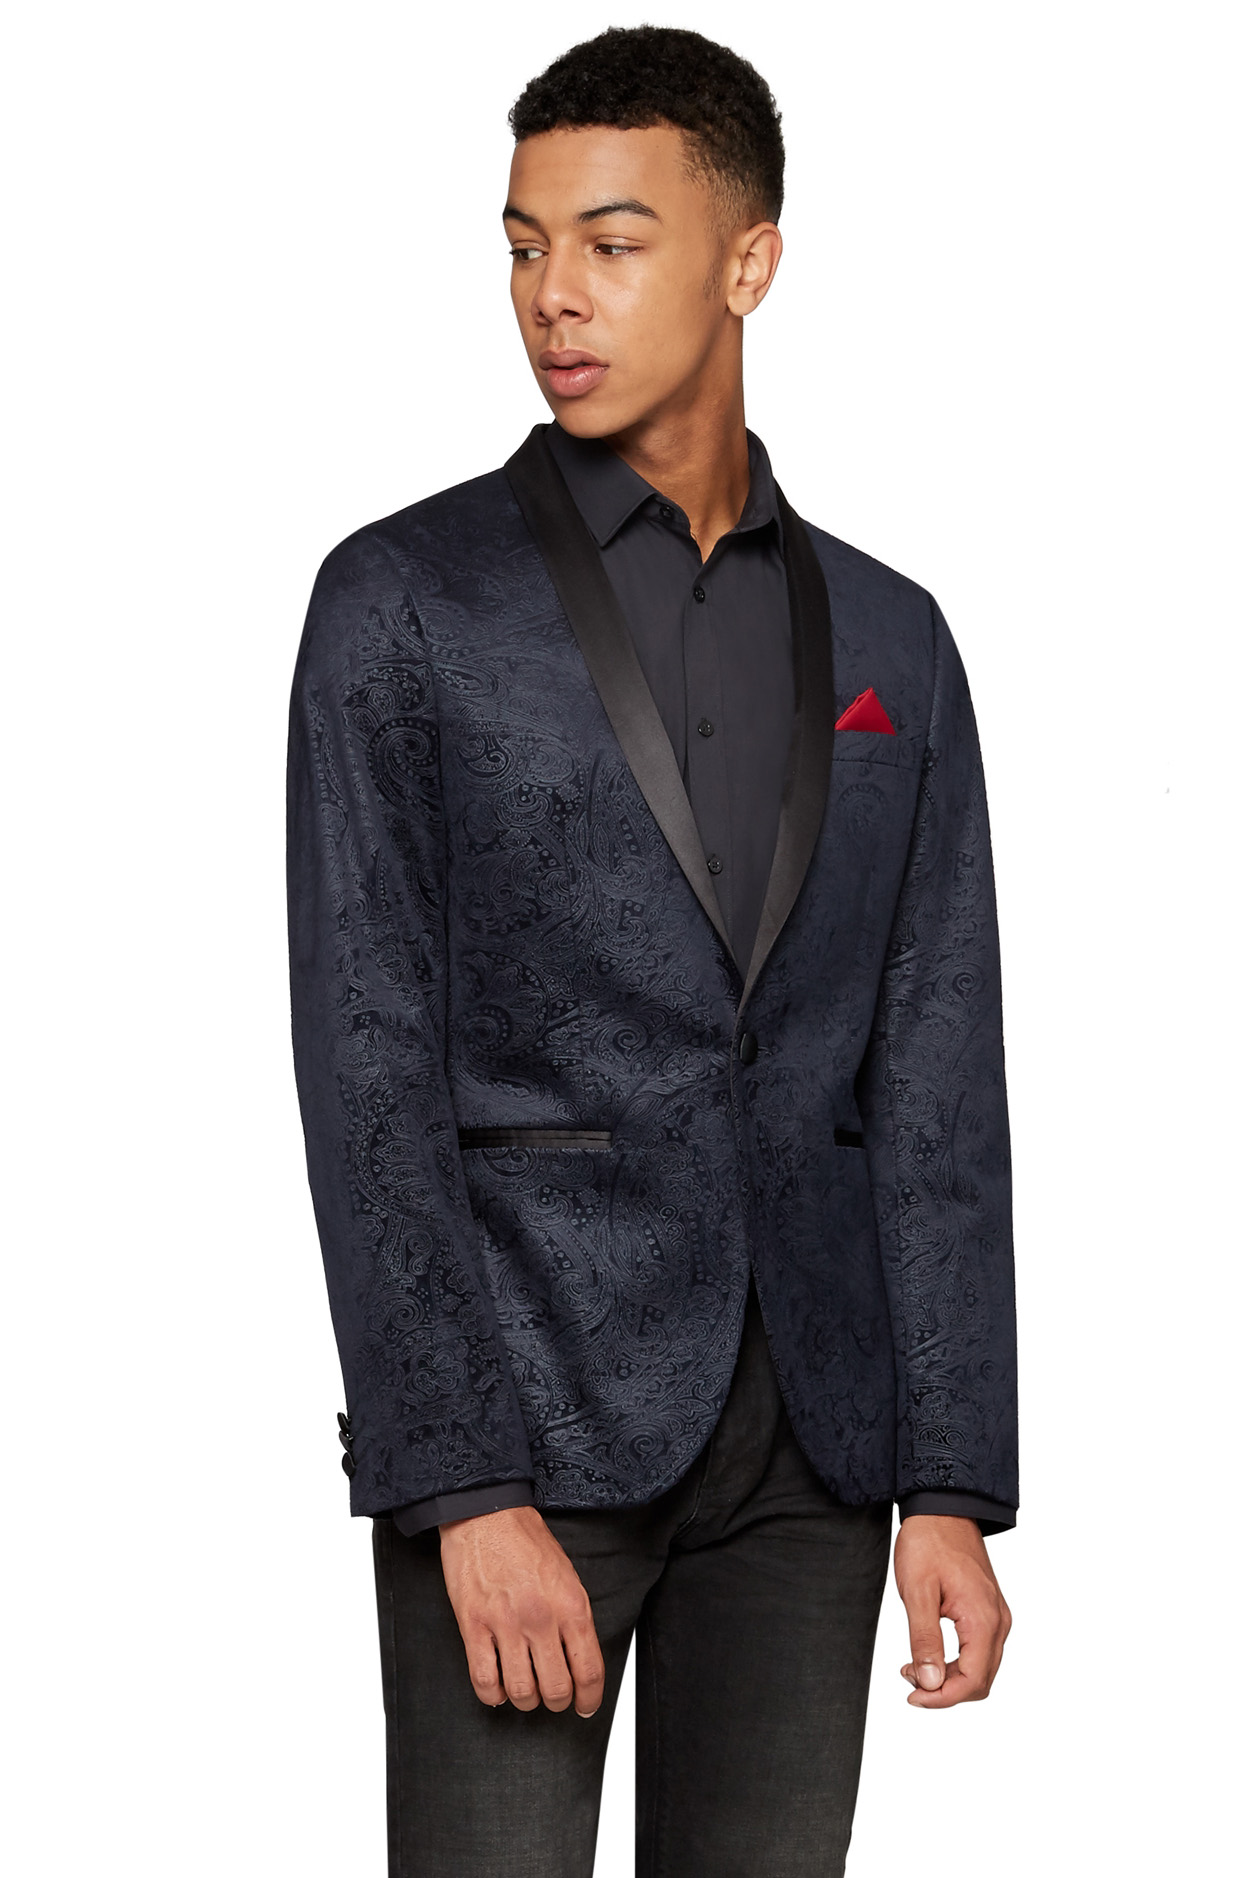 Oct 19,  · The suit jacket is generally a lot longer than sports jacket/blazer. One lapel overlaps the other on a suit jacket slightly; on a sj/blazer, they are exactly centered to each other. A suit jacket is cut to a straight body side profile, whereas a sj/blazer may have a slight indent at the lower stomach/waist.